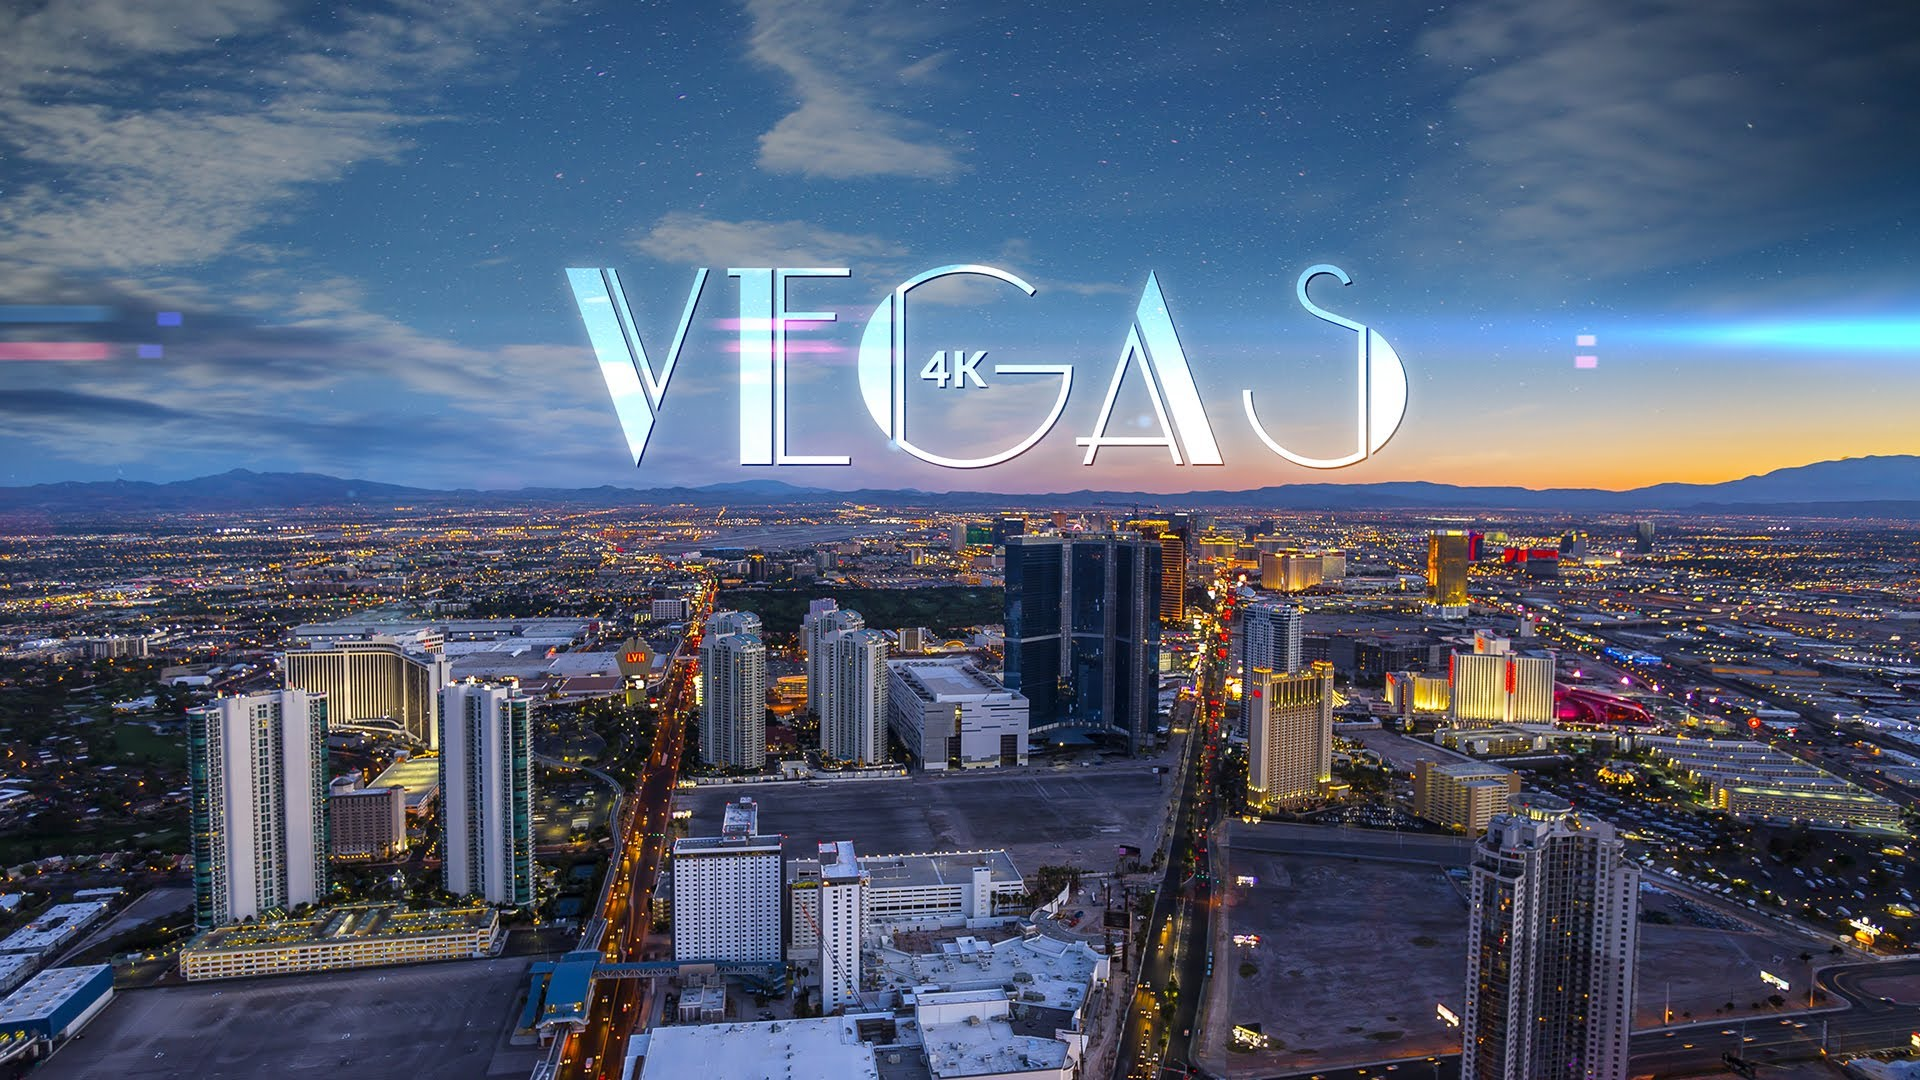 Vegas 4k An Ultra High Definition Time Lapse Video Of Sin City At Night